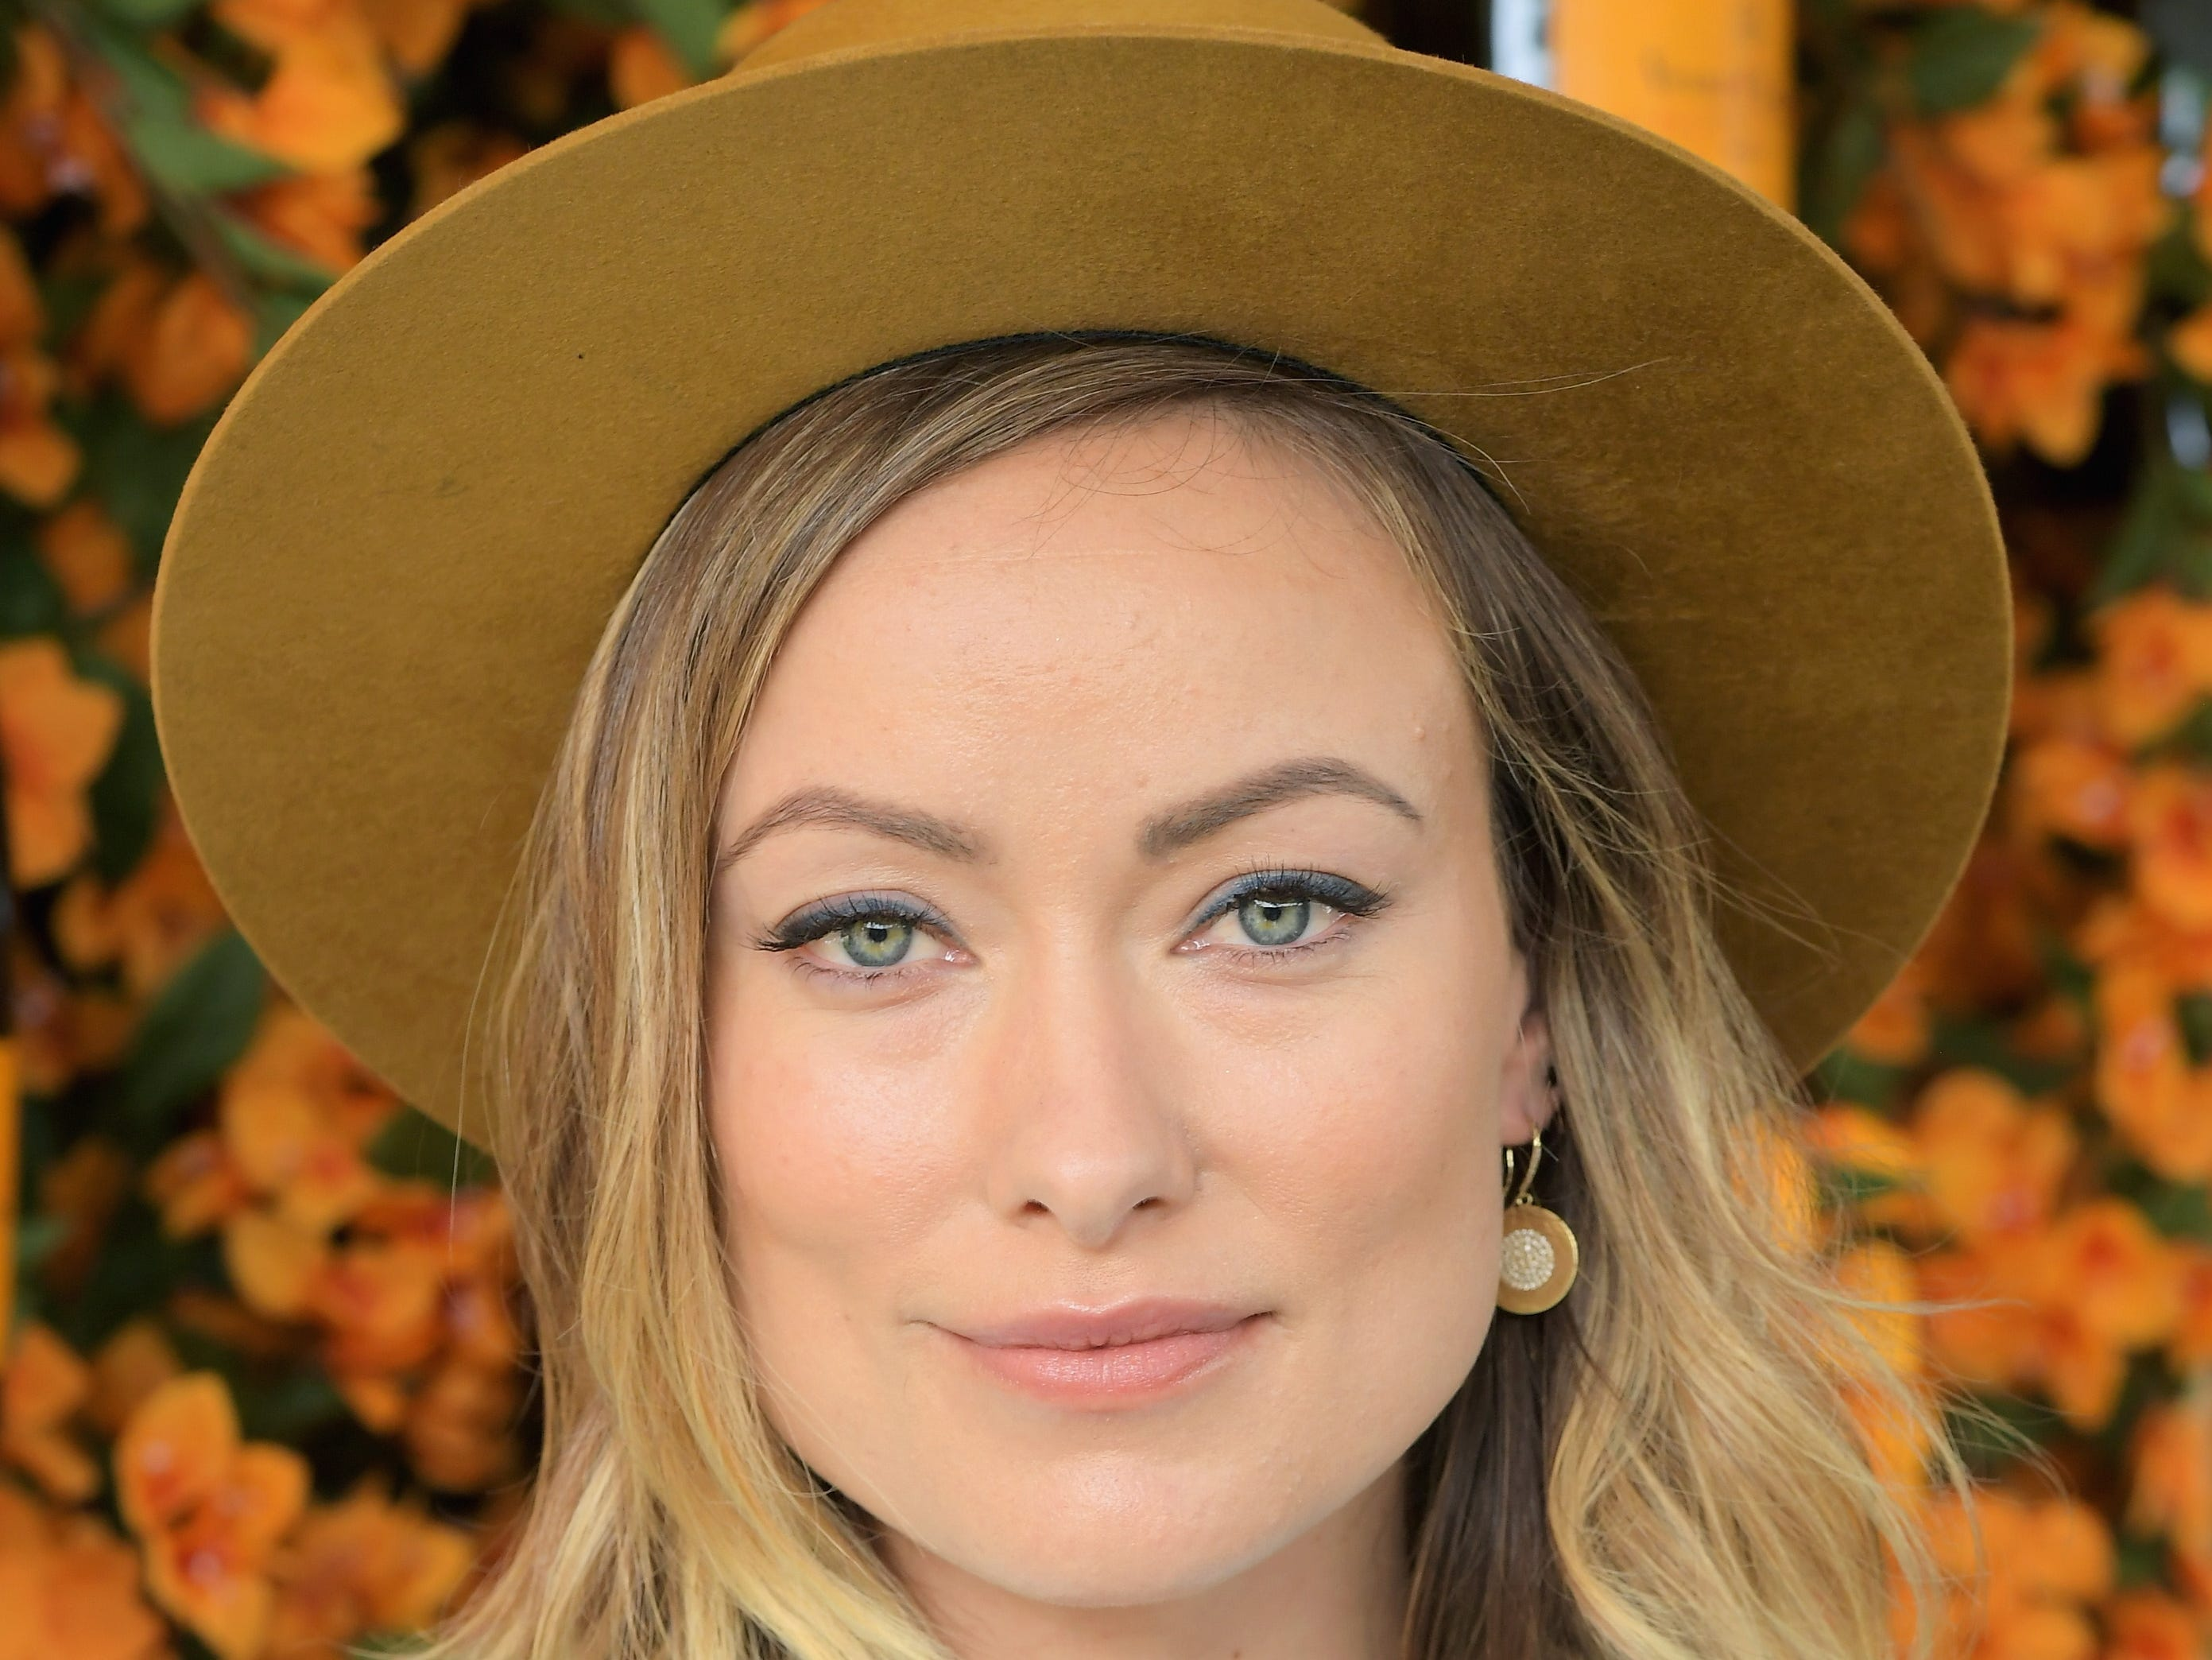 PACIFIC PALISADES, CA - OCTOBER 06:  Olivia Wilde attends the Ninth-Annual Veuve Clicquot Polo Classic Los Angeles at Will Rogers State Historic Park on October 6, 2018 in Pacific Palisades, California.  (Photo by Charley Gallay/Getty Images for Veuve Clicquot) ORG XMIT: 775234243 ORIG FILE ID: 1046783148